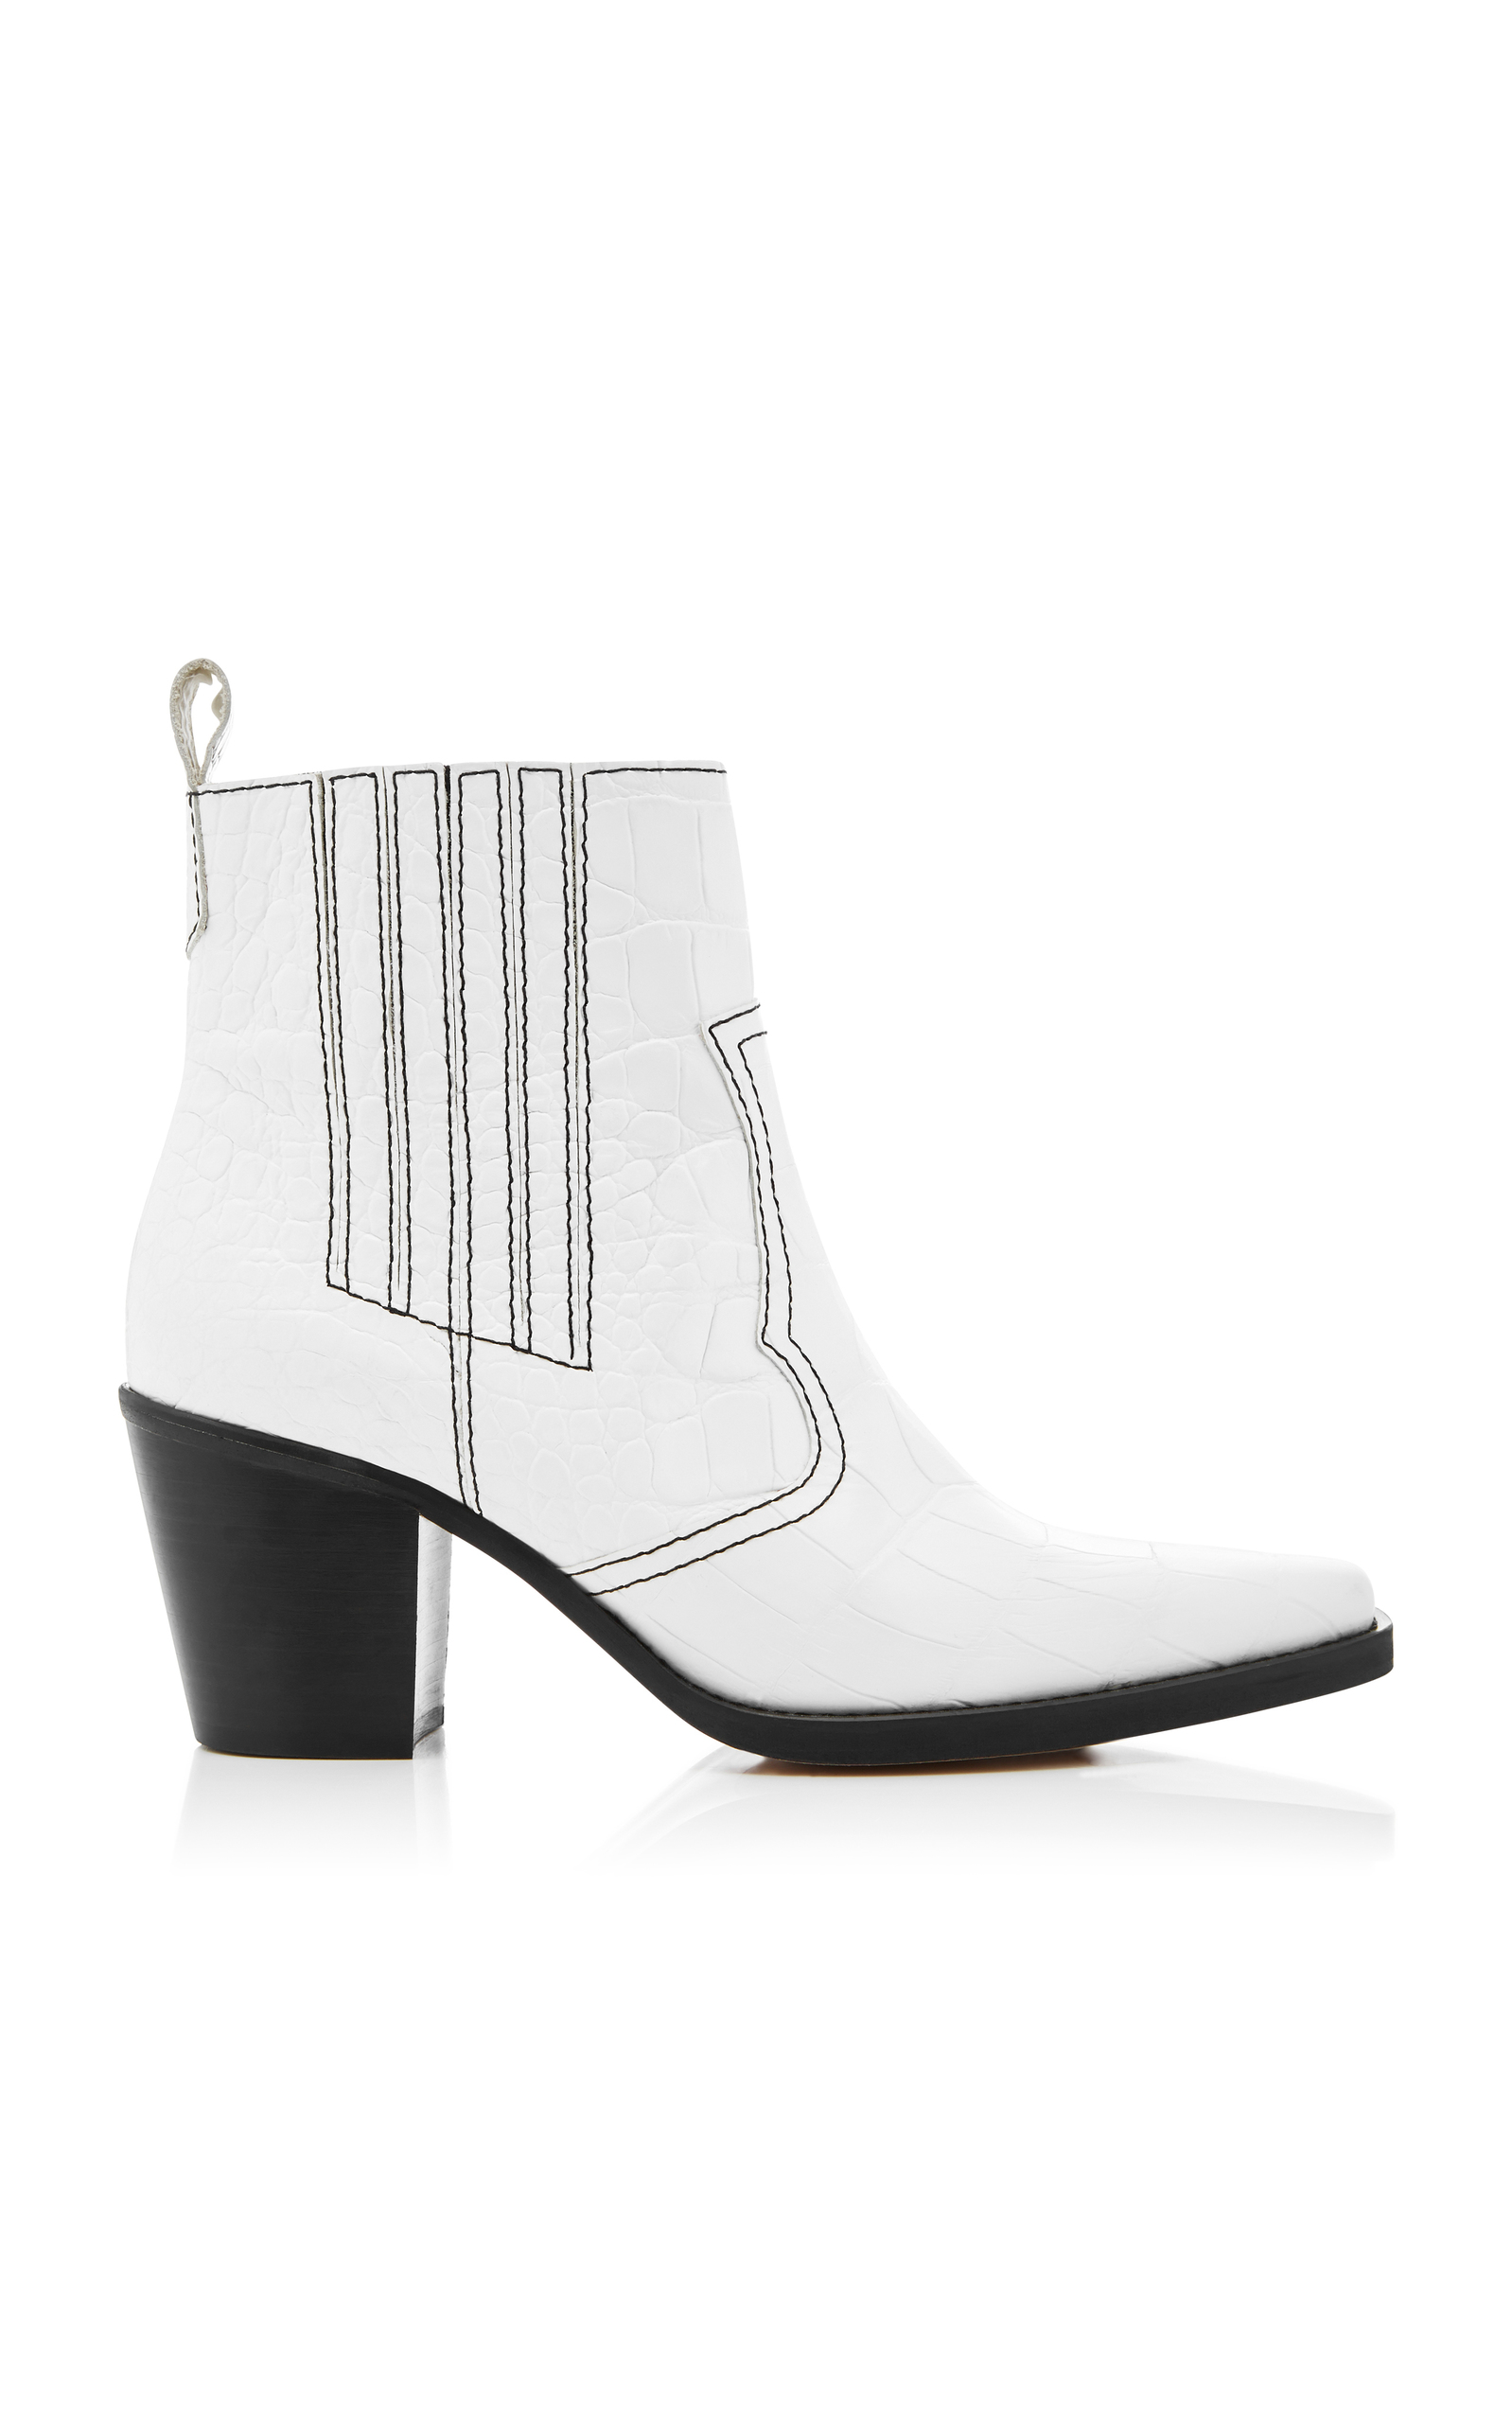 Callie Crocodile-Effect Leather Ankle Boots in White from Oxygen Boutique